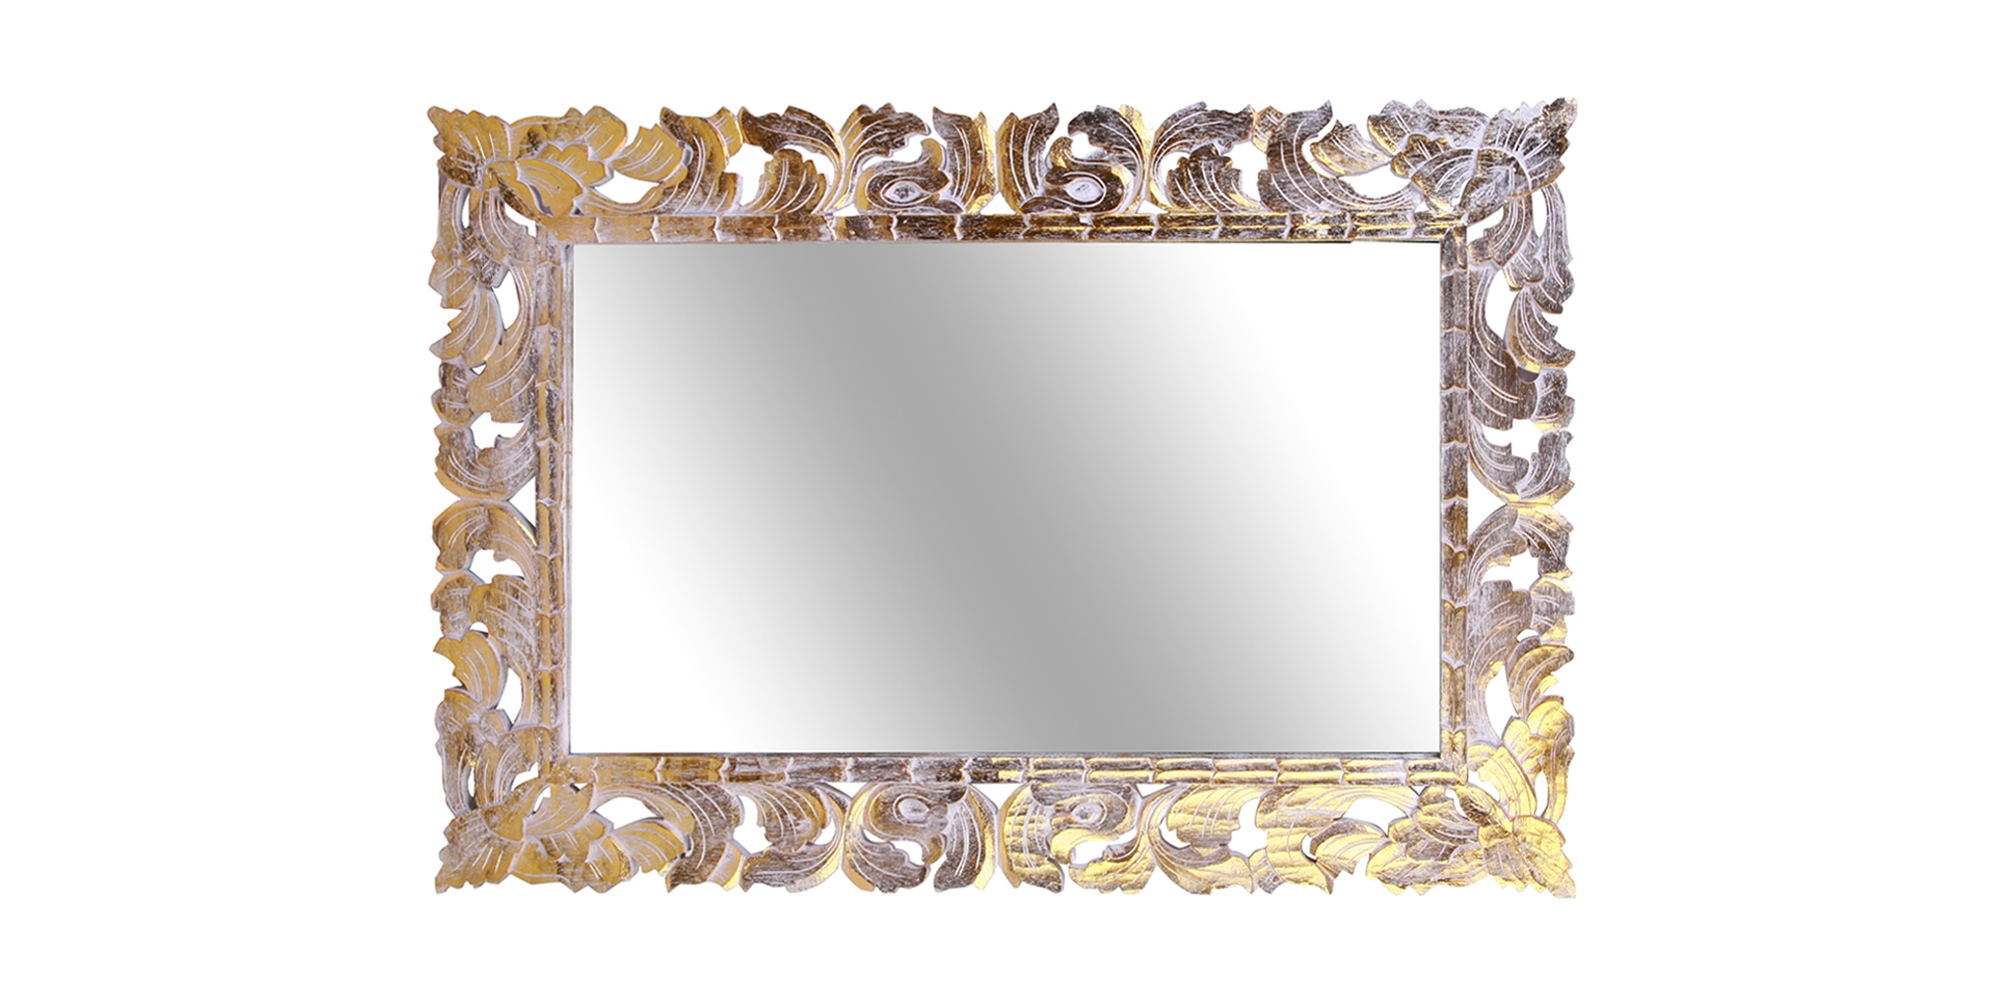 Omnia Craft Bali Rectangular Gilded Mirror Intended For Gilded Mirror (Image 10 of 15)